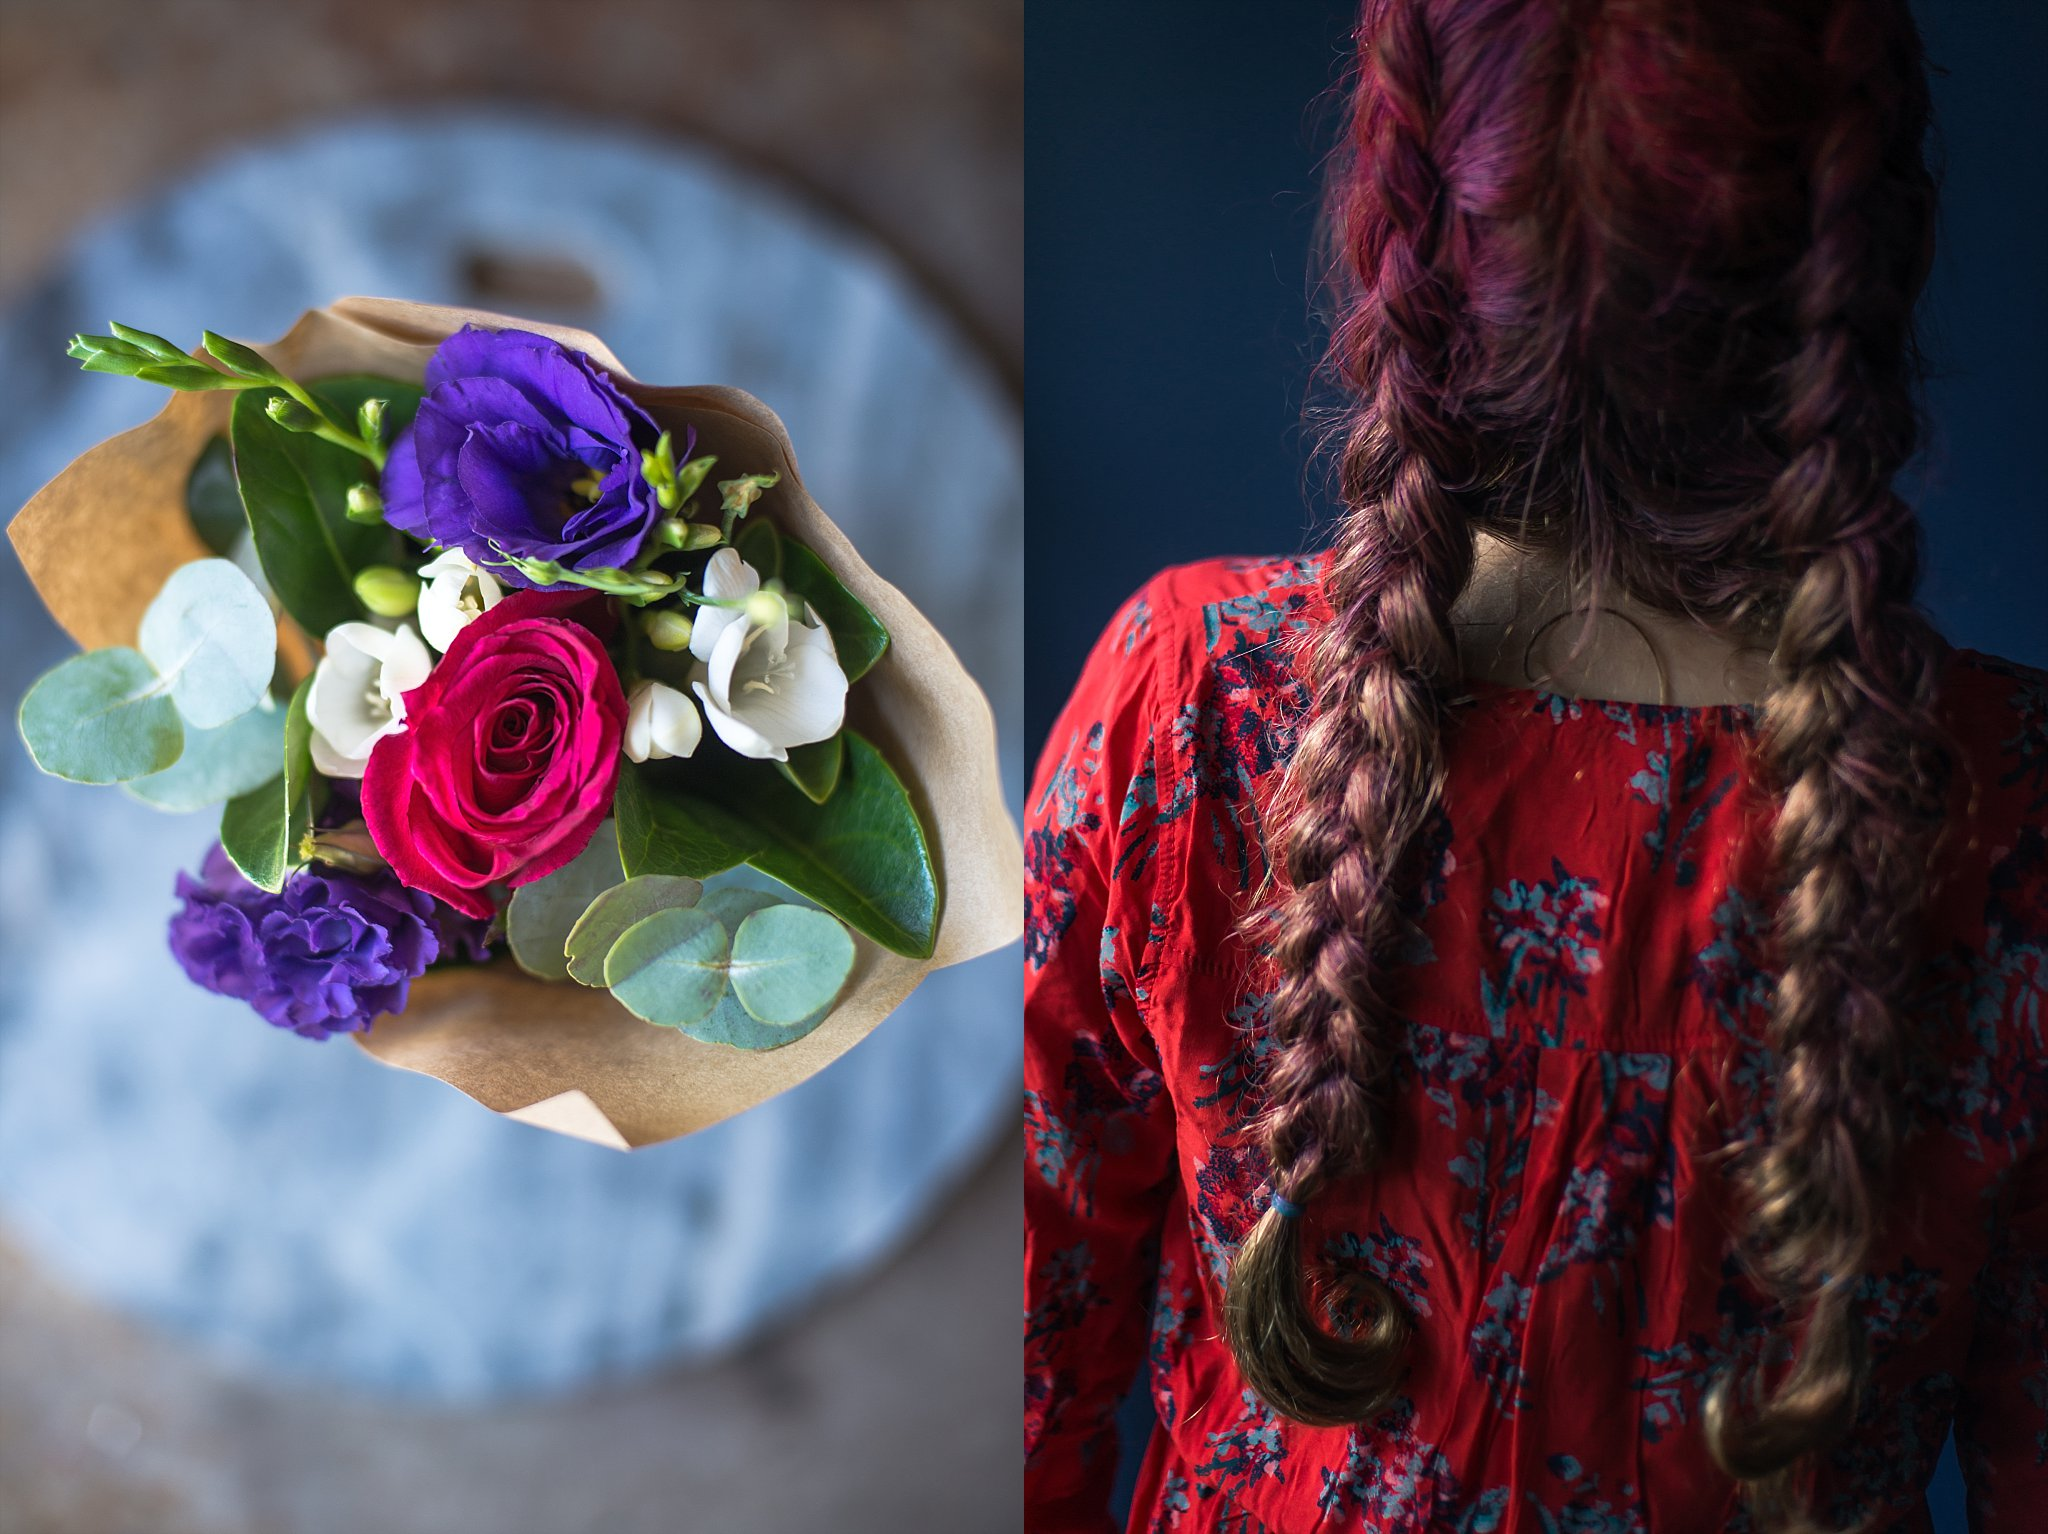 A diptych of flowers and a girl with coloured plaits.